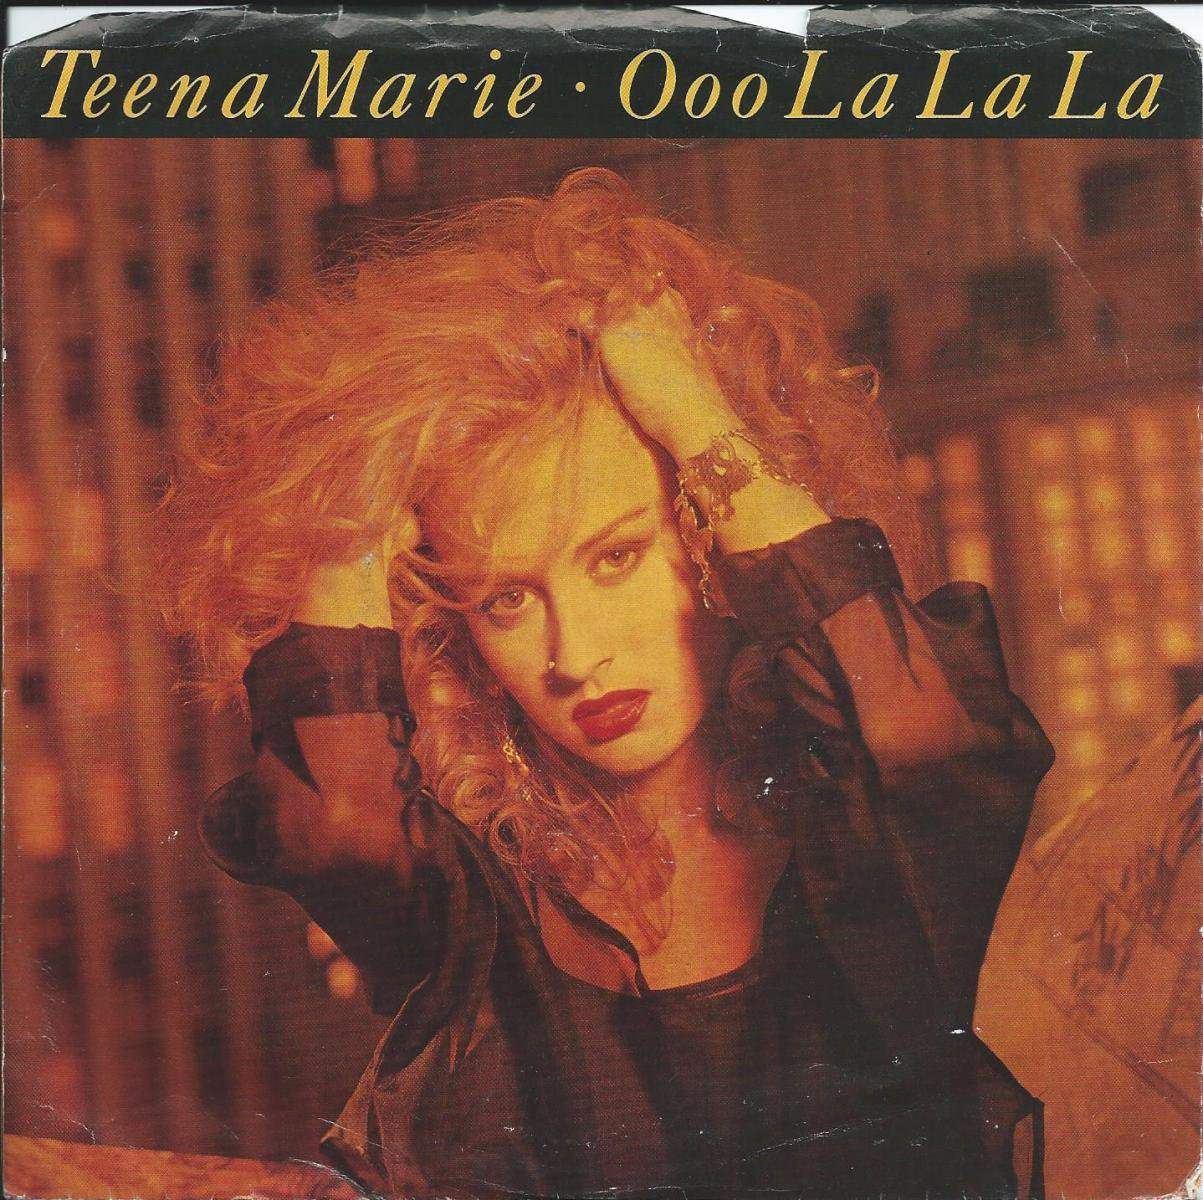 TEENA MARIE / OOO LA LA LA / SING ONE TO YOUR LOVE (7